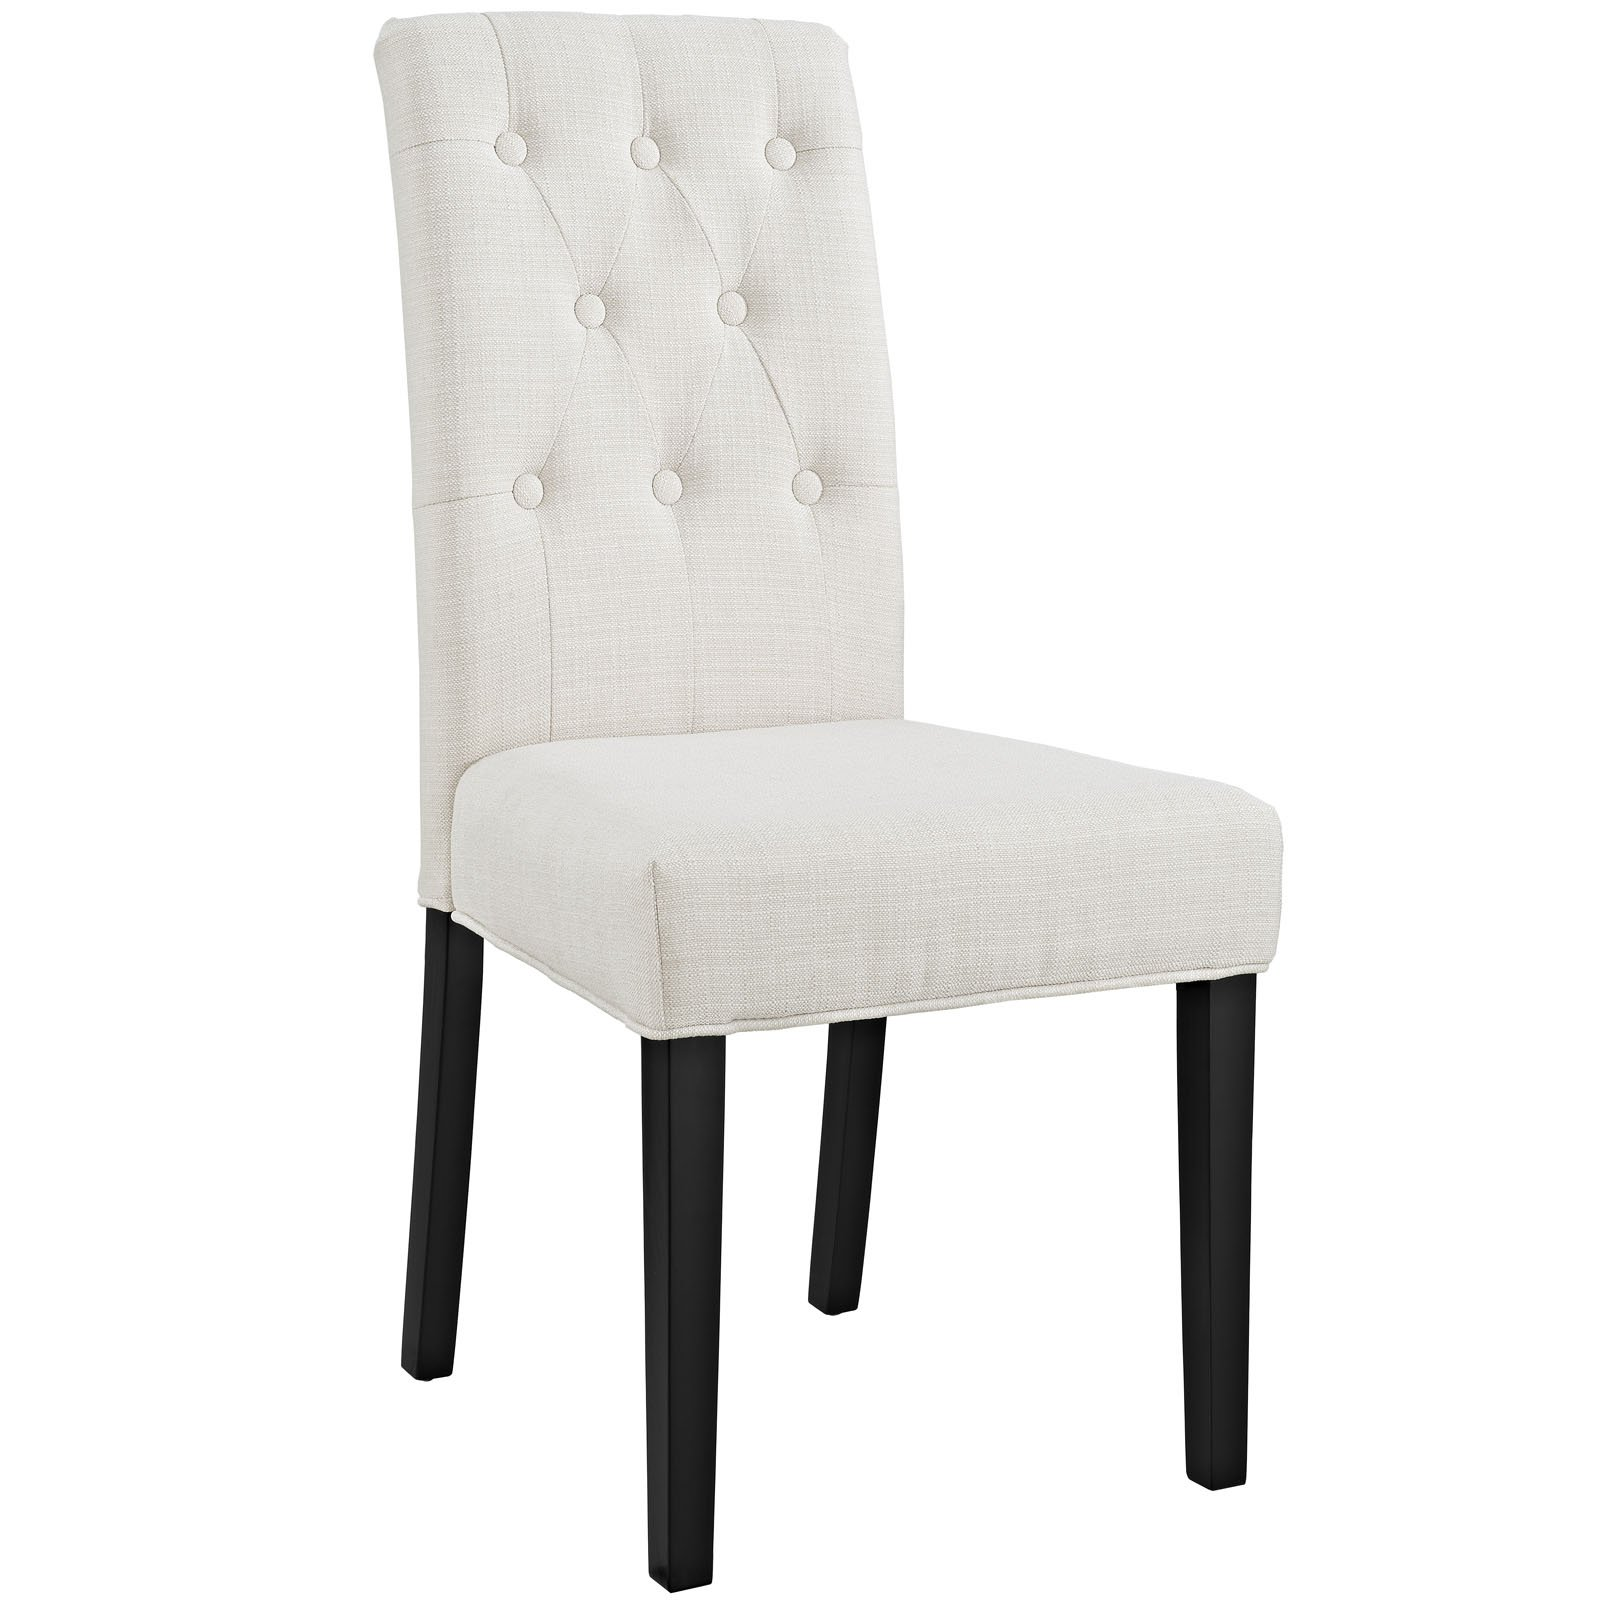 Modway Confer Dining Fabric Side Chair, Beige by Modway